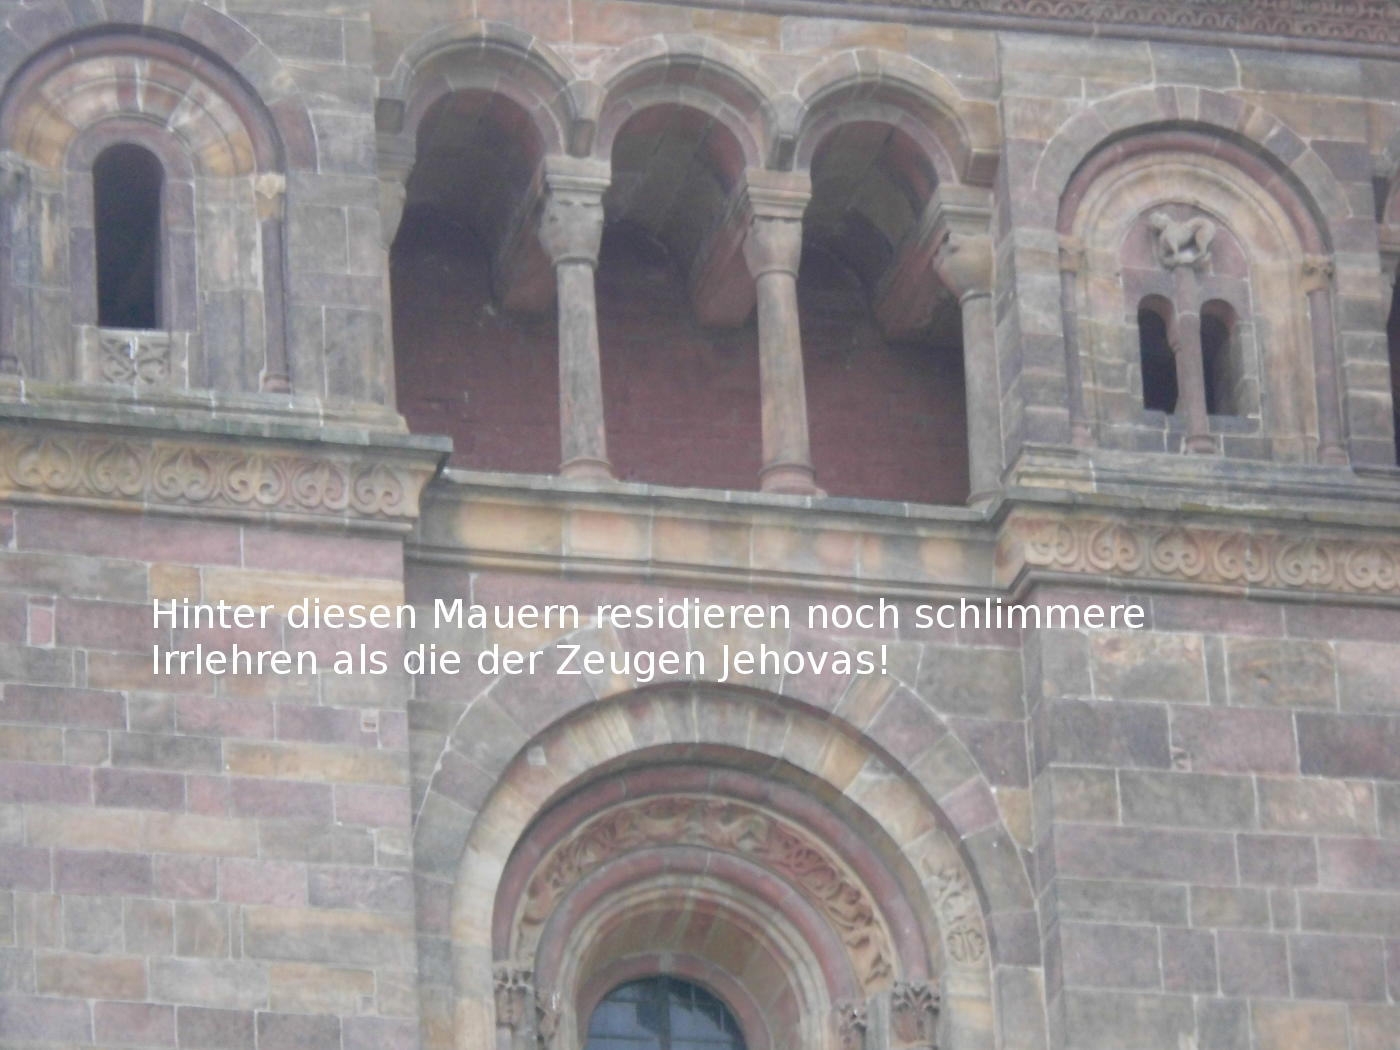 Speyer: almost no Jehovah's Witnesses